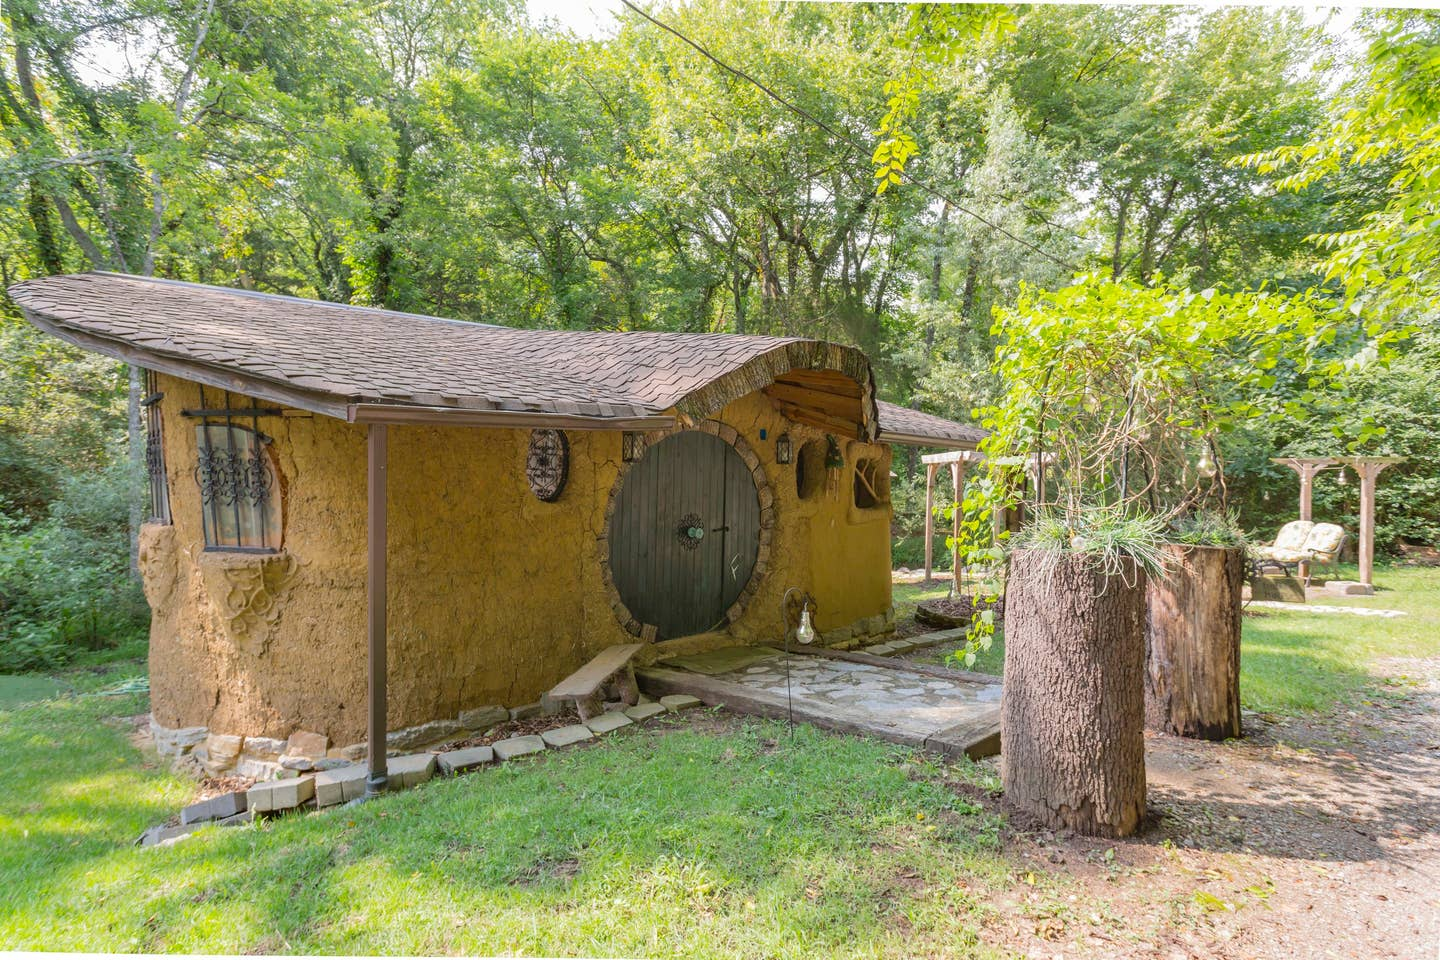 Hobbit and Lord of the Rings Airbnb homes and houses in the USA Virginia Fairfield mud clay home